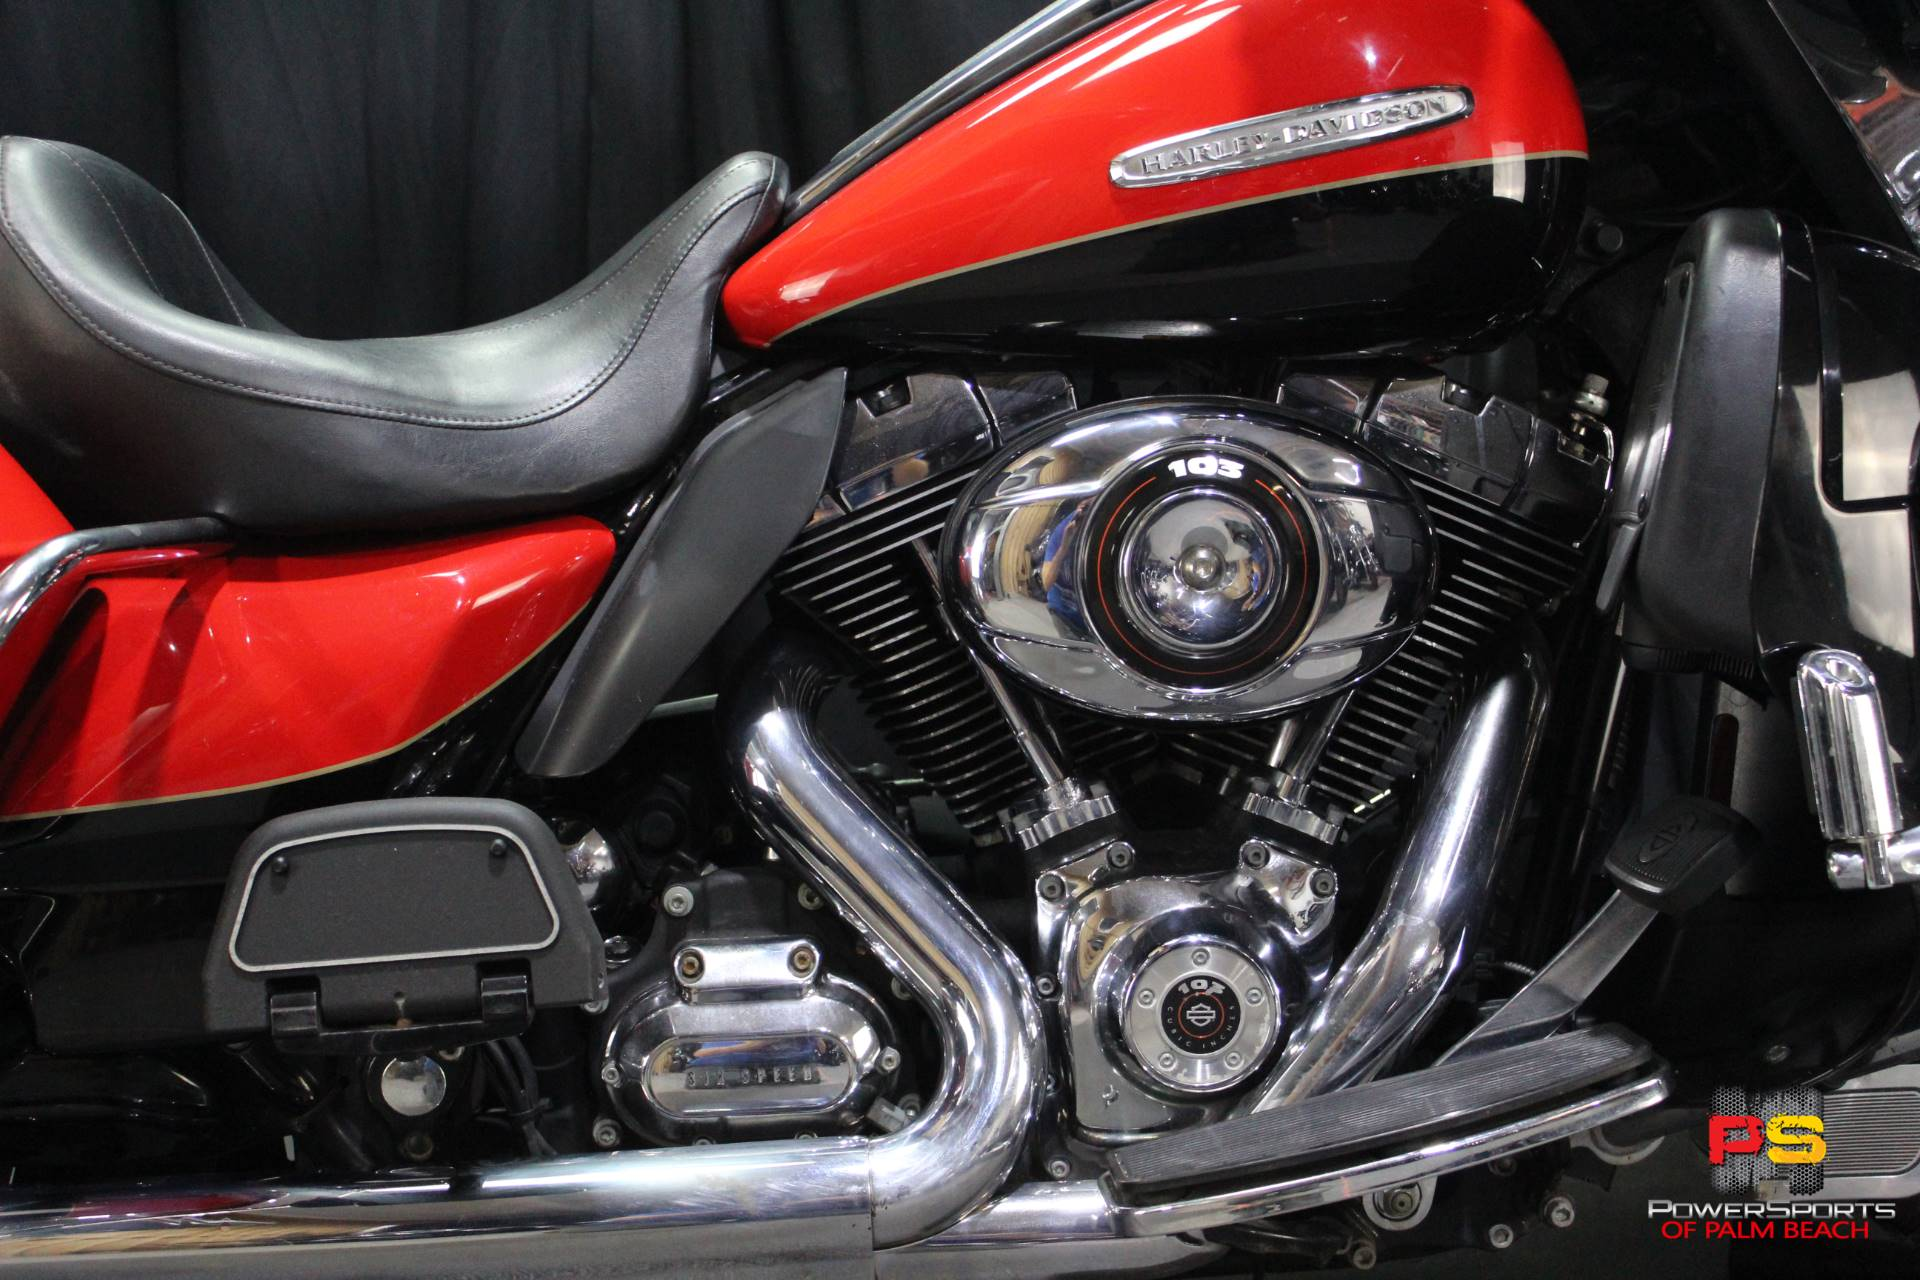 2010 Harley-Davidson Electra Glide® Ultra Limited in Lake Park, Florida - Photo 4